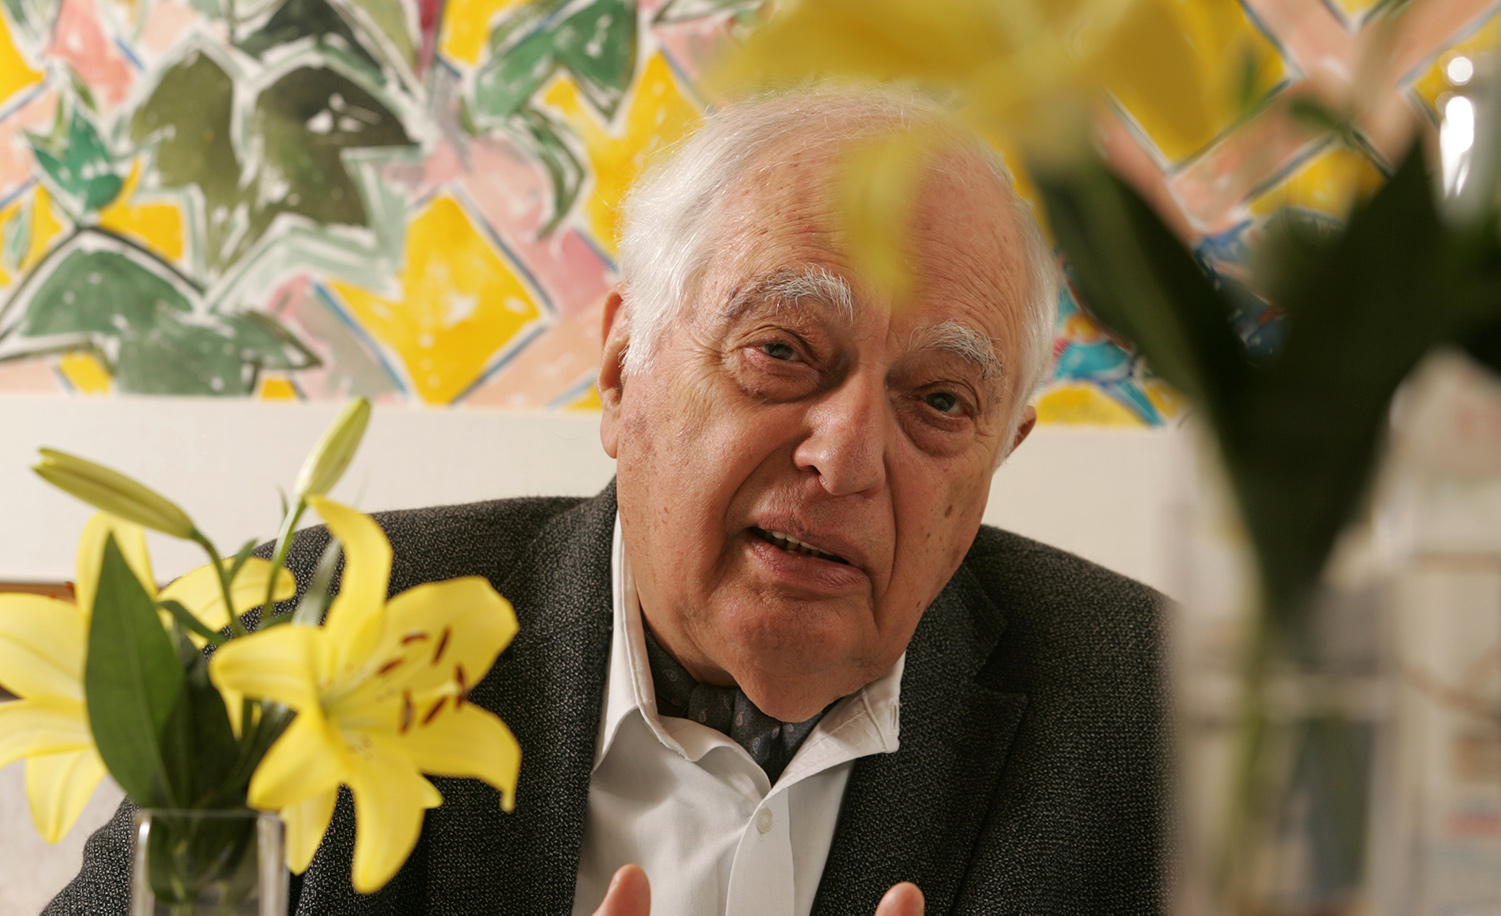 With the Death of Bernard Lewis, the Age of Academic Giants Has Come to an End